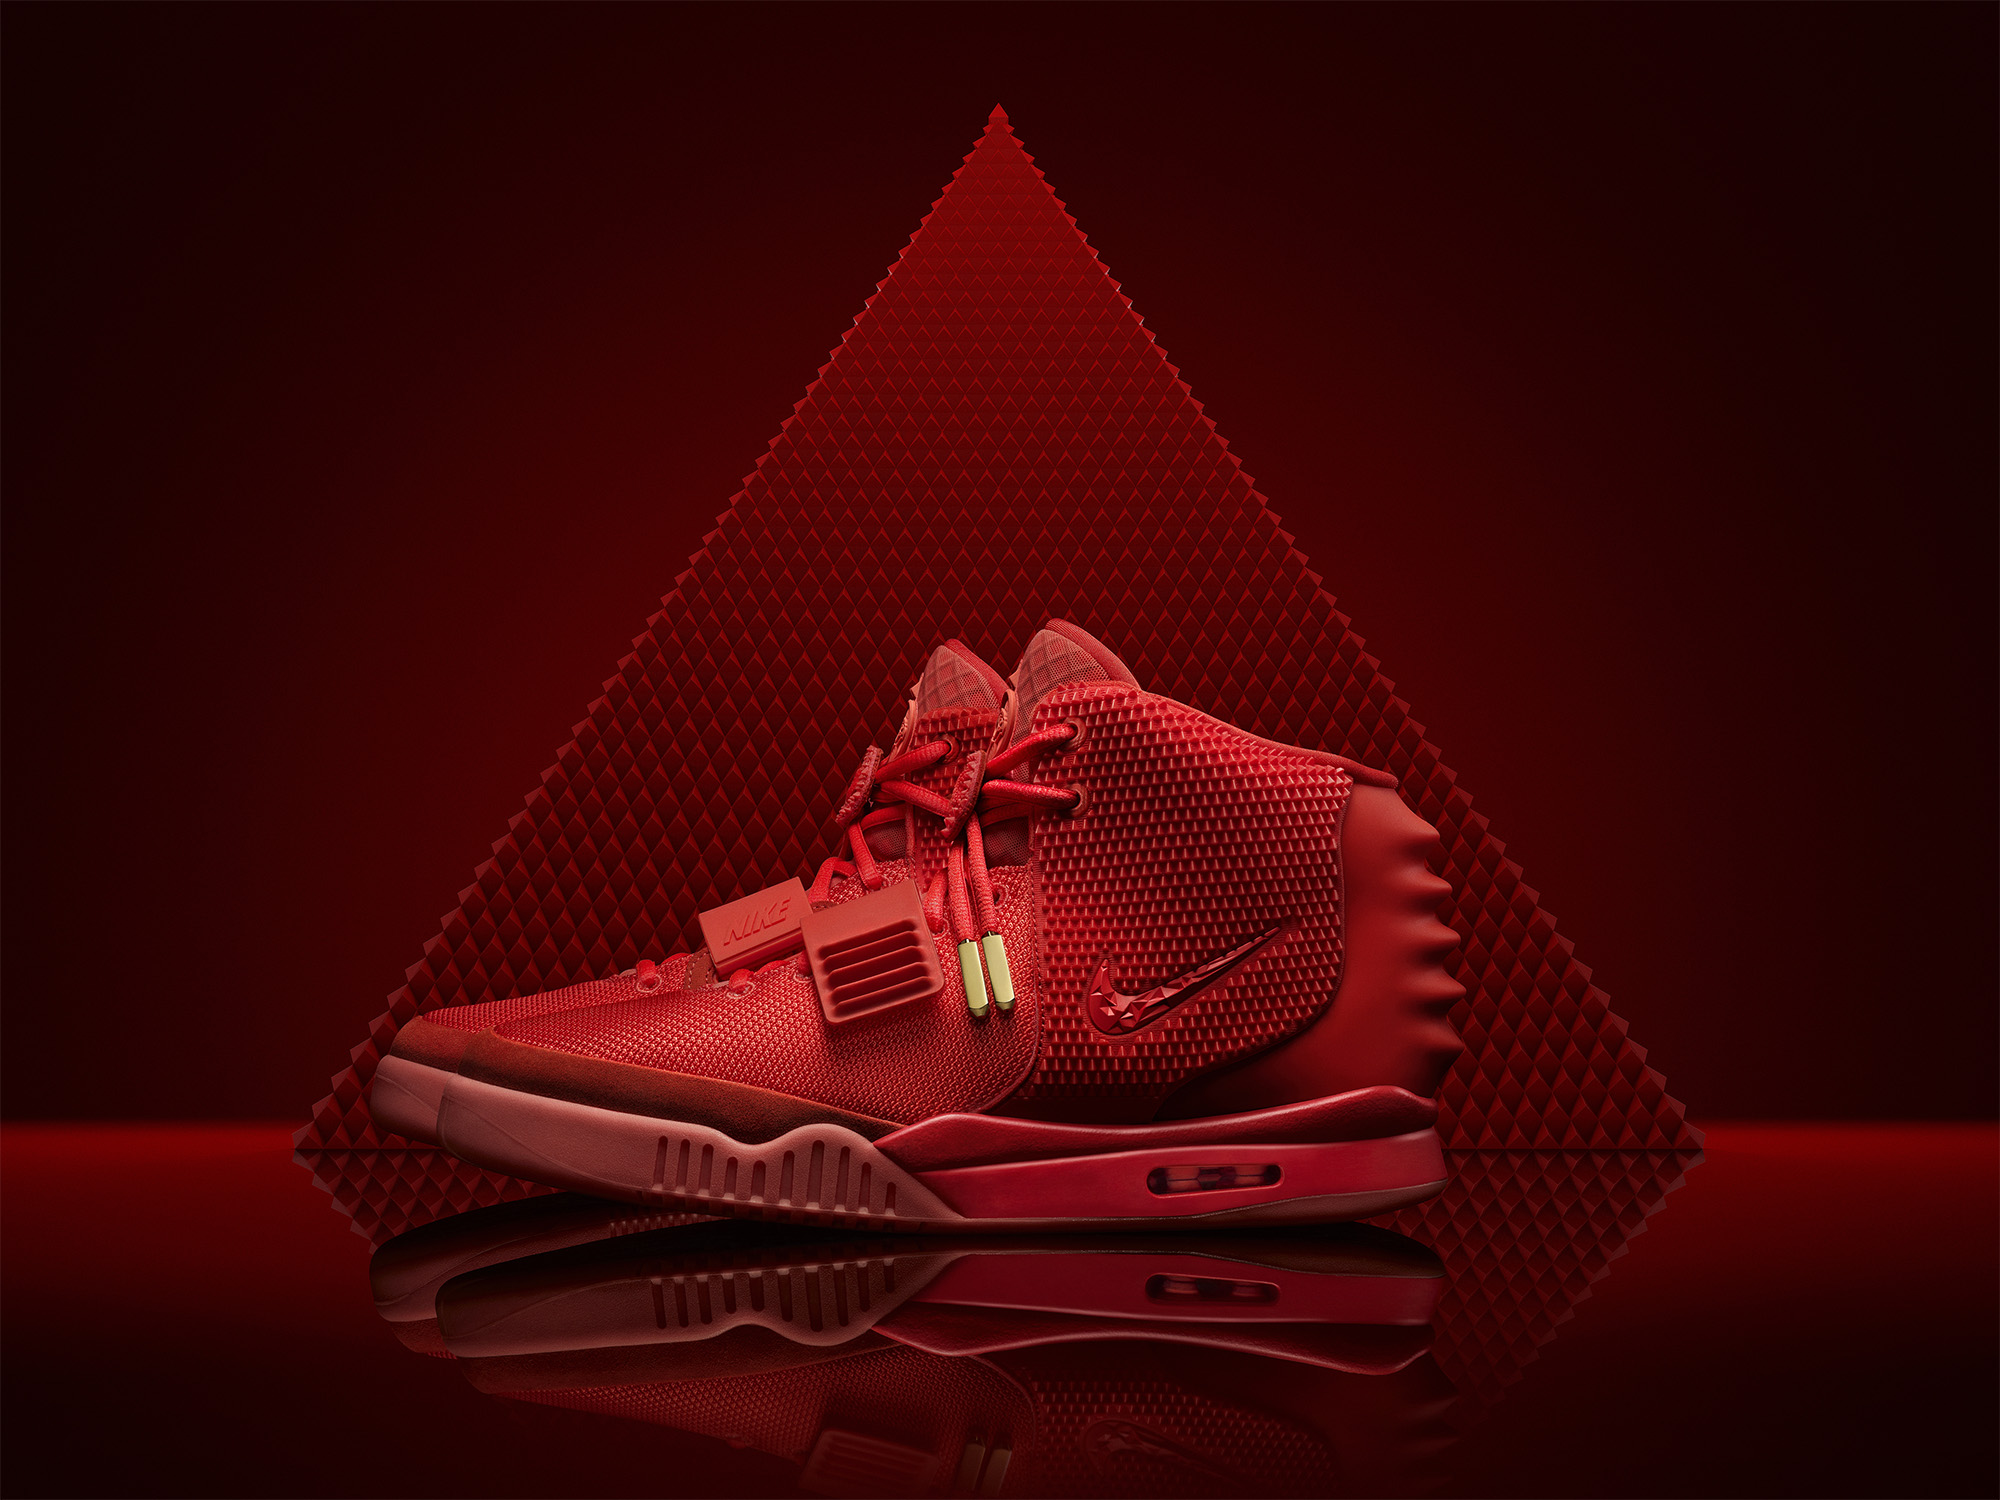 Nike Air Yeezy II Red October